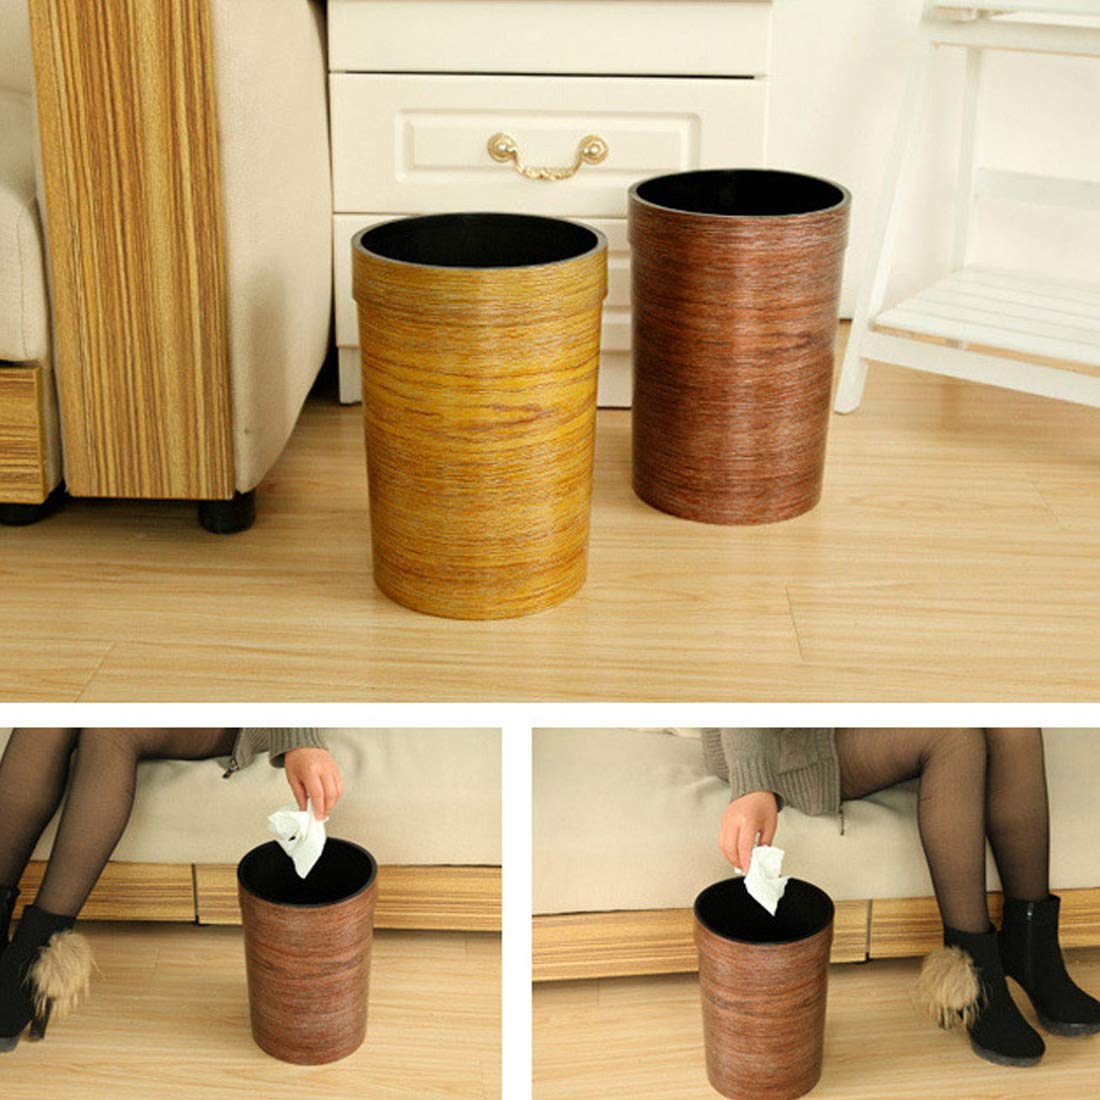 WOLFBUSH Trash Bin 9L Wood Grain Garbage Can Plastic Pressure Ring Waste Basket Without Lid (Coffee) by WOLFBUSH (Image #2)